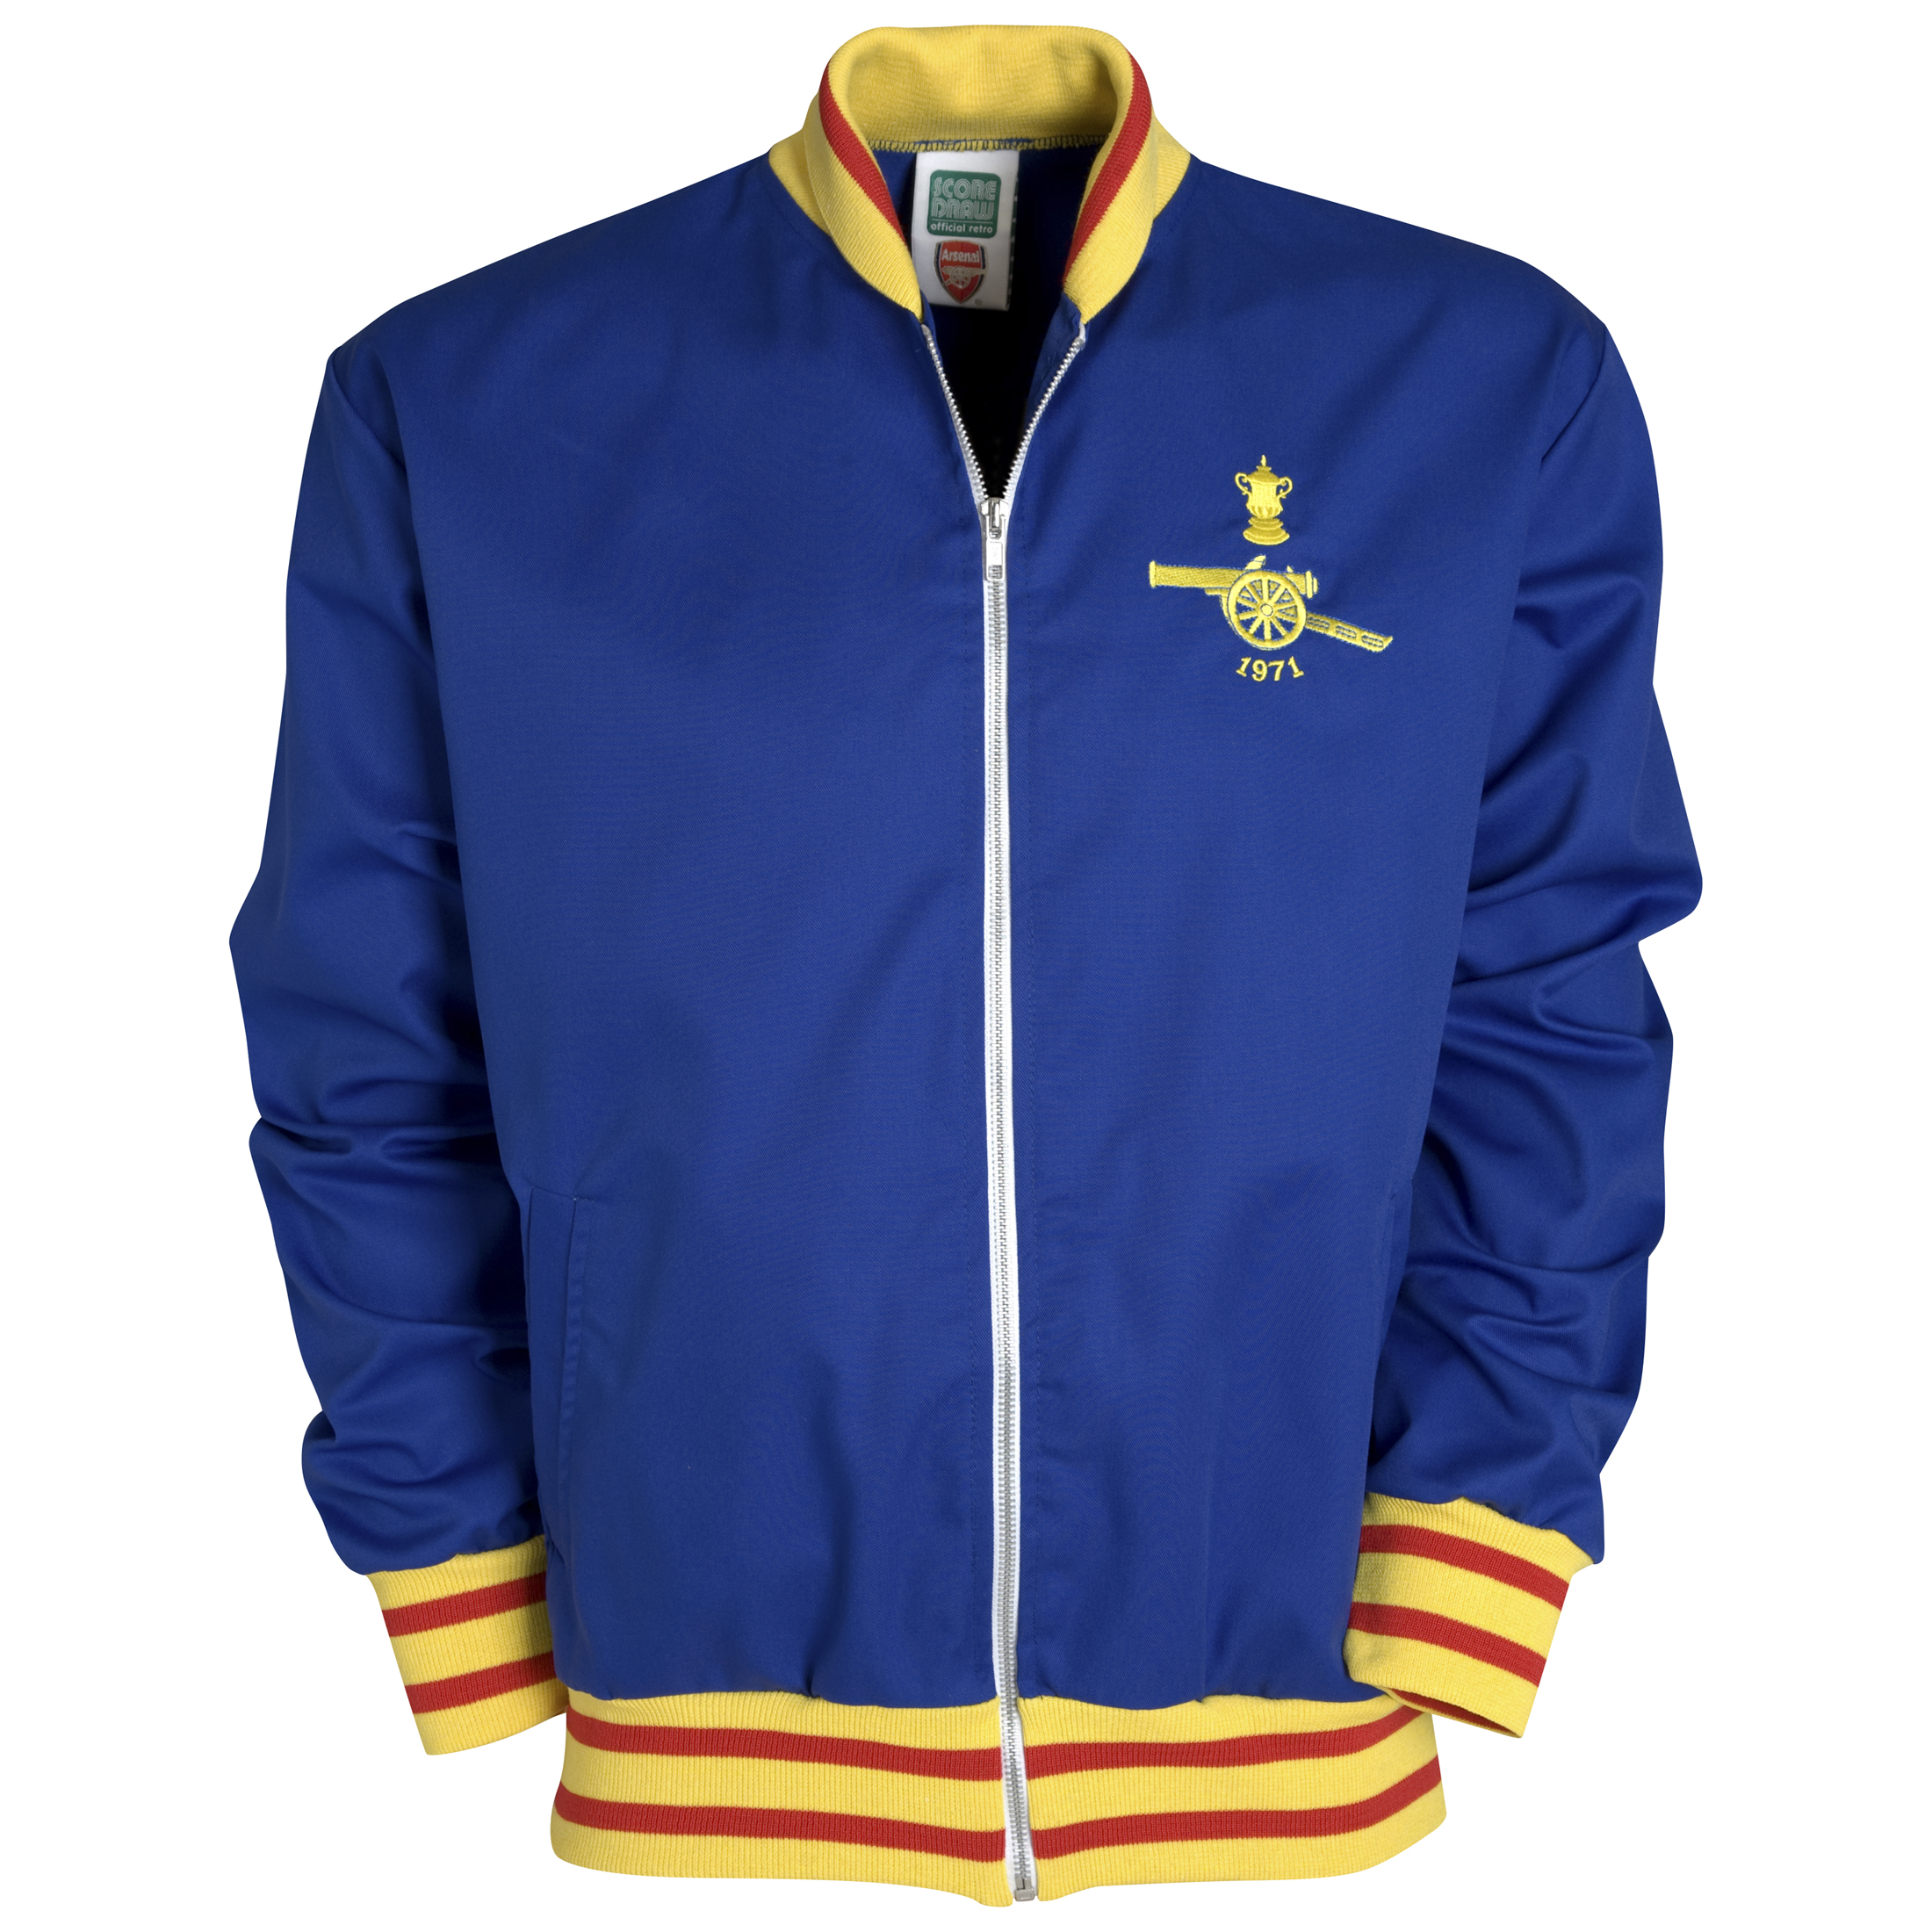 Arsenal 1971 FA Cup Final Track Jacket